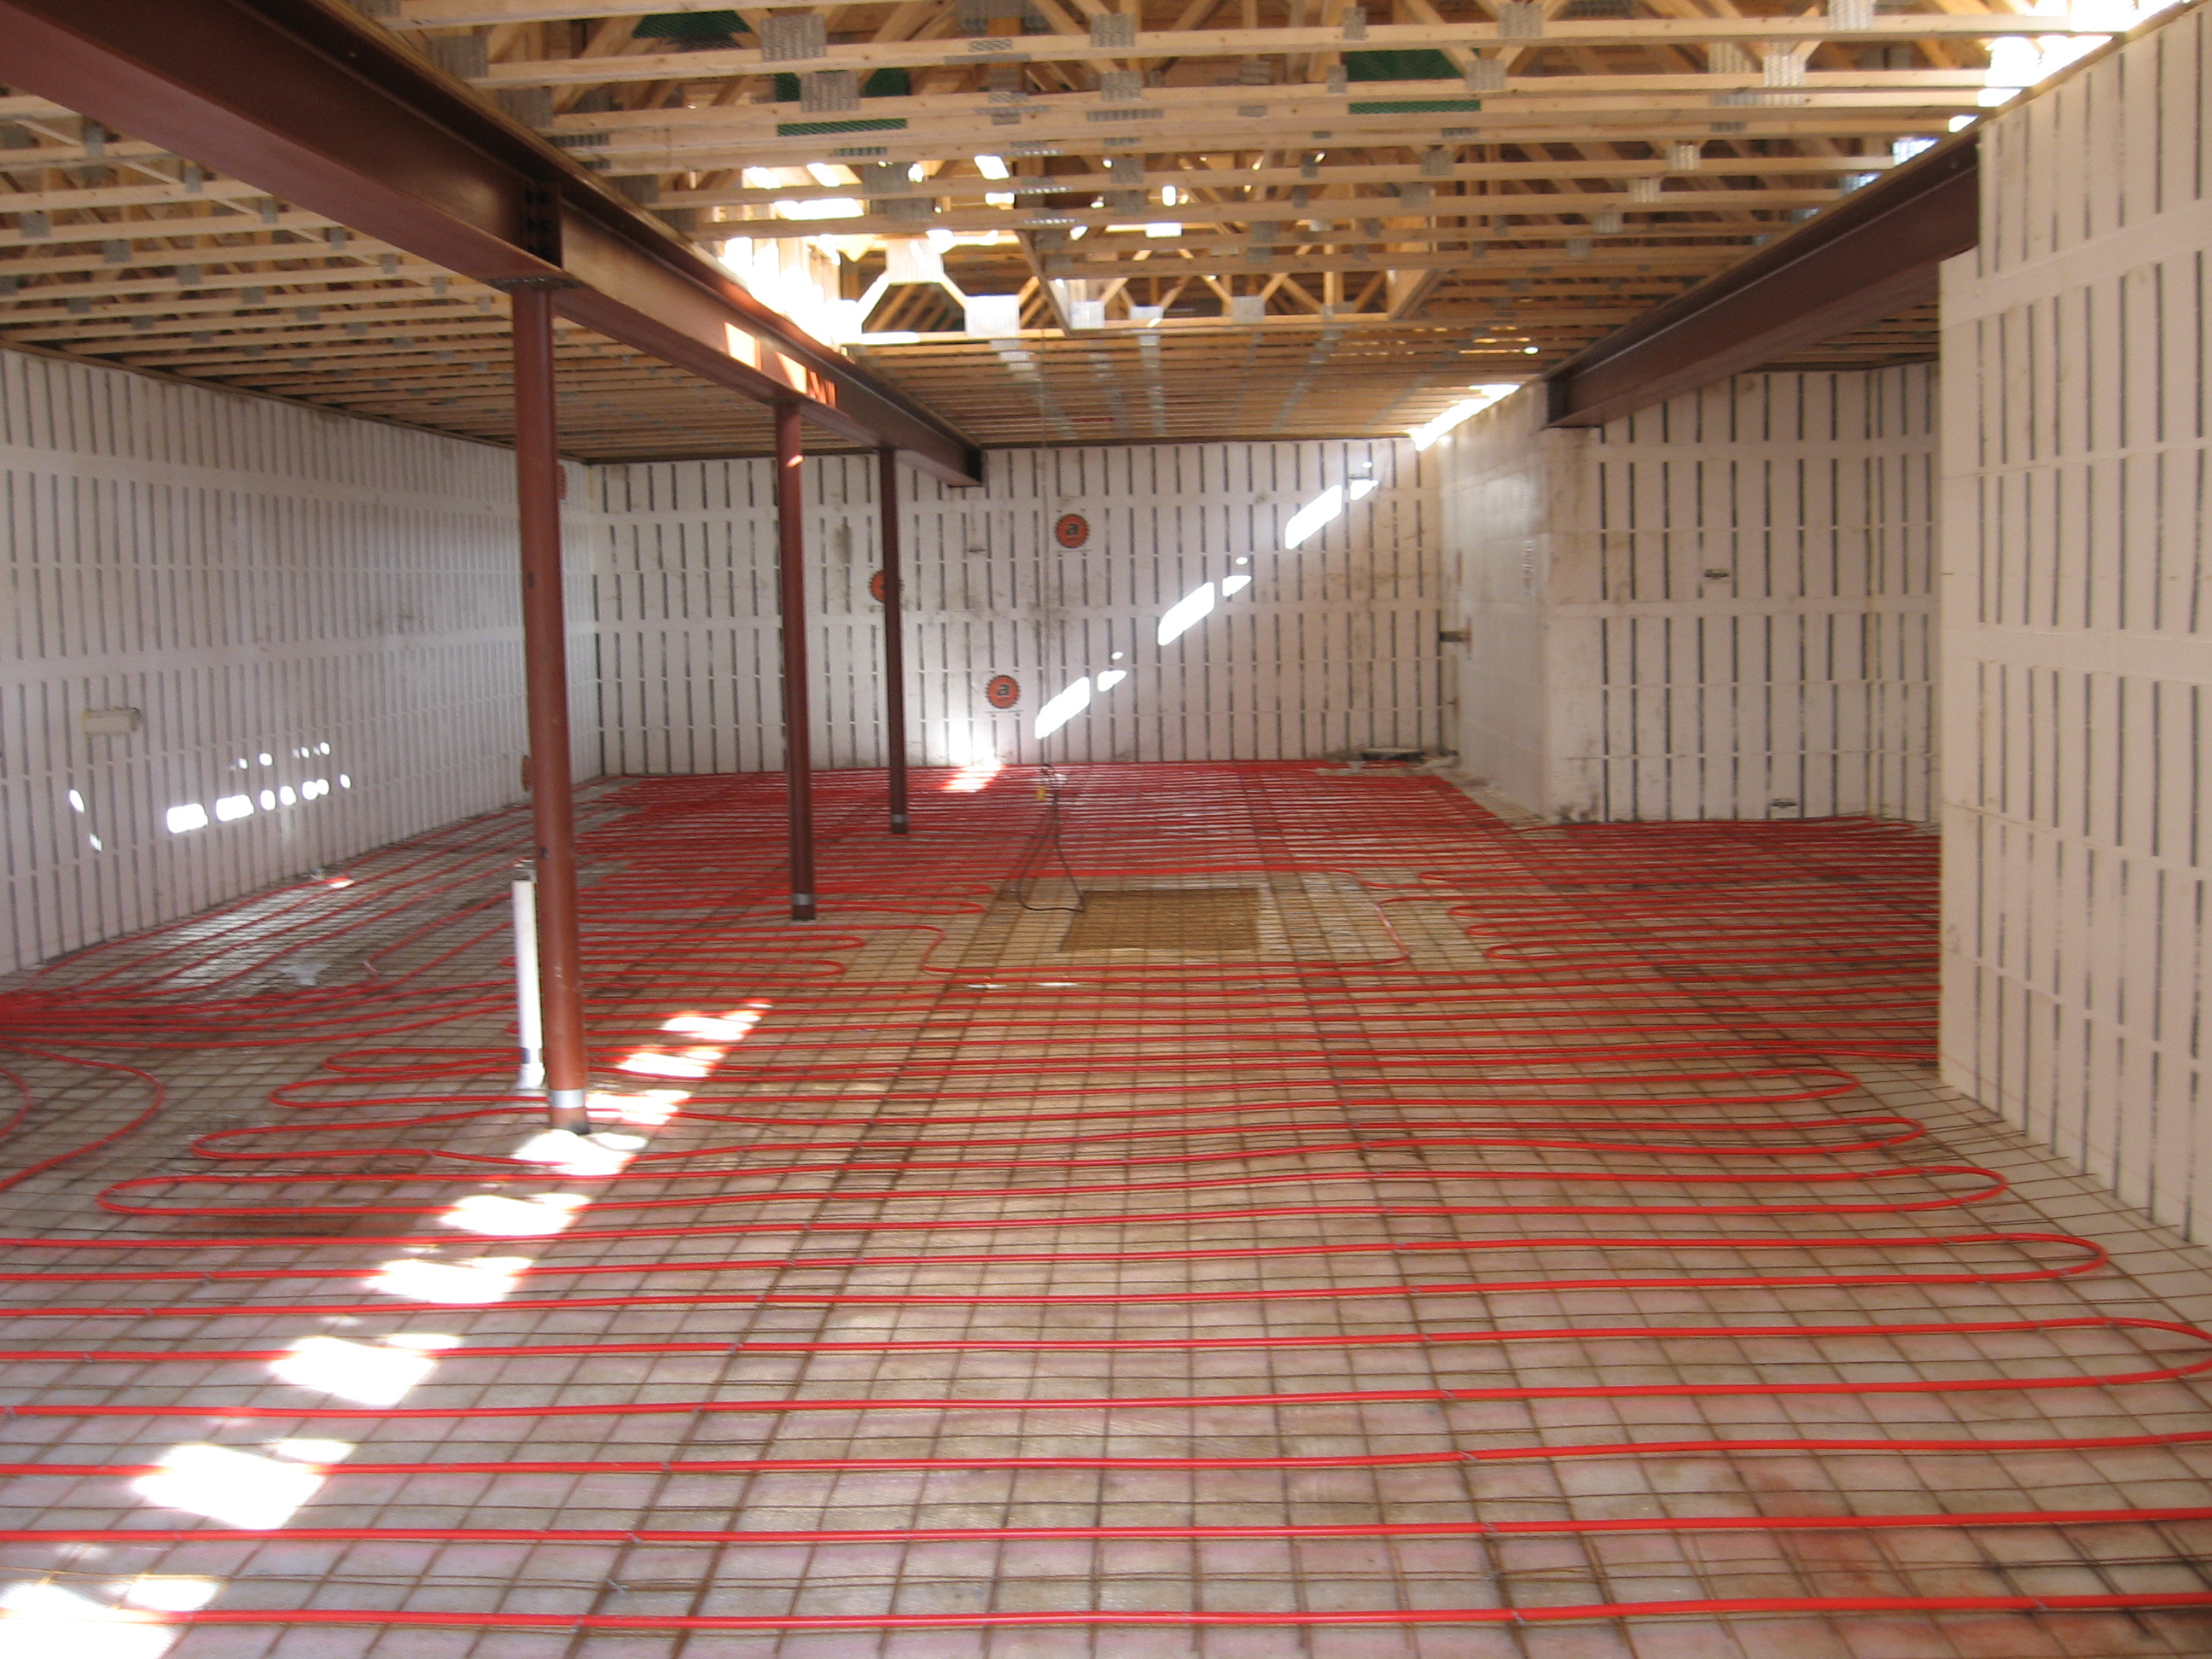 radiant heat flooring basement images